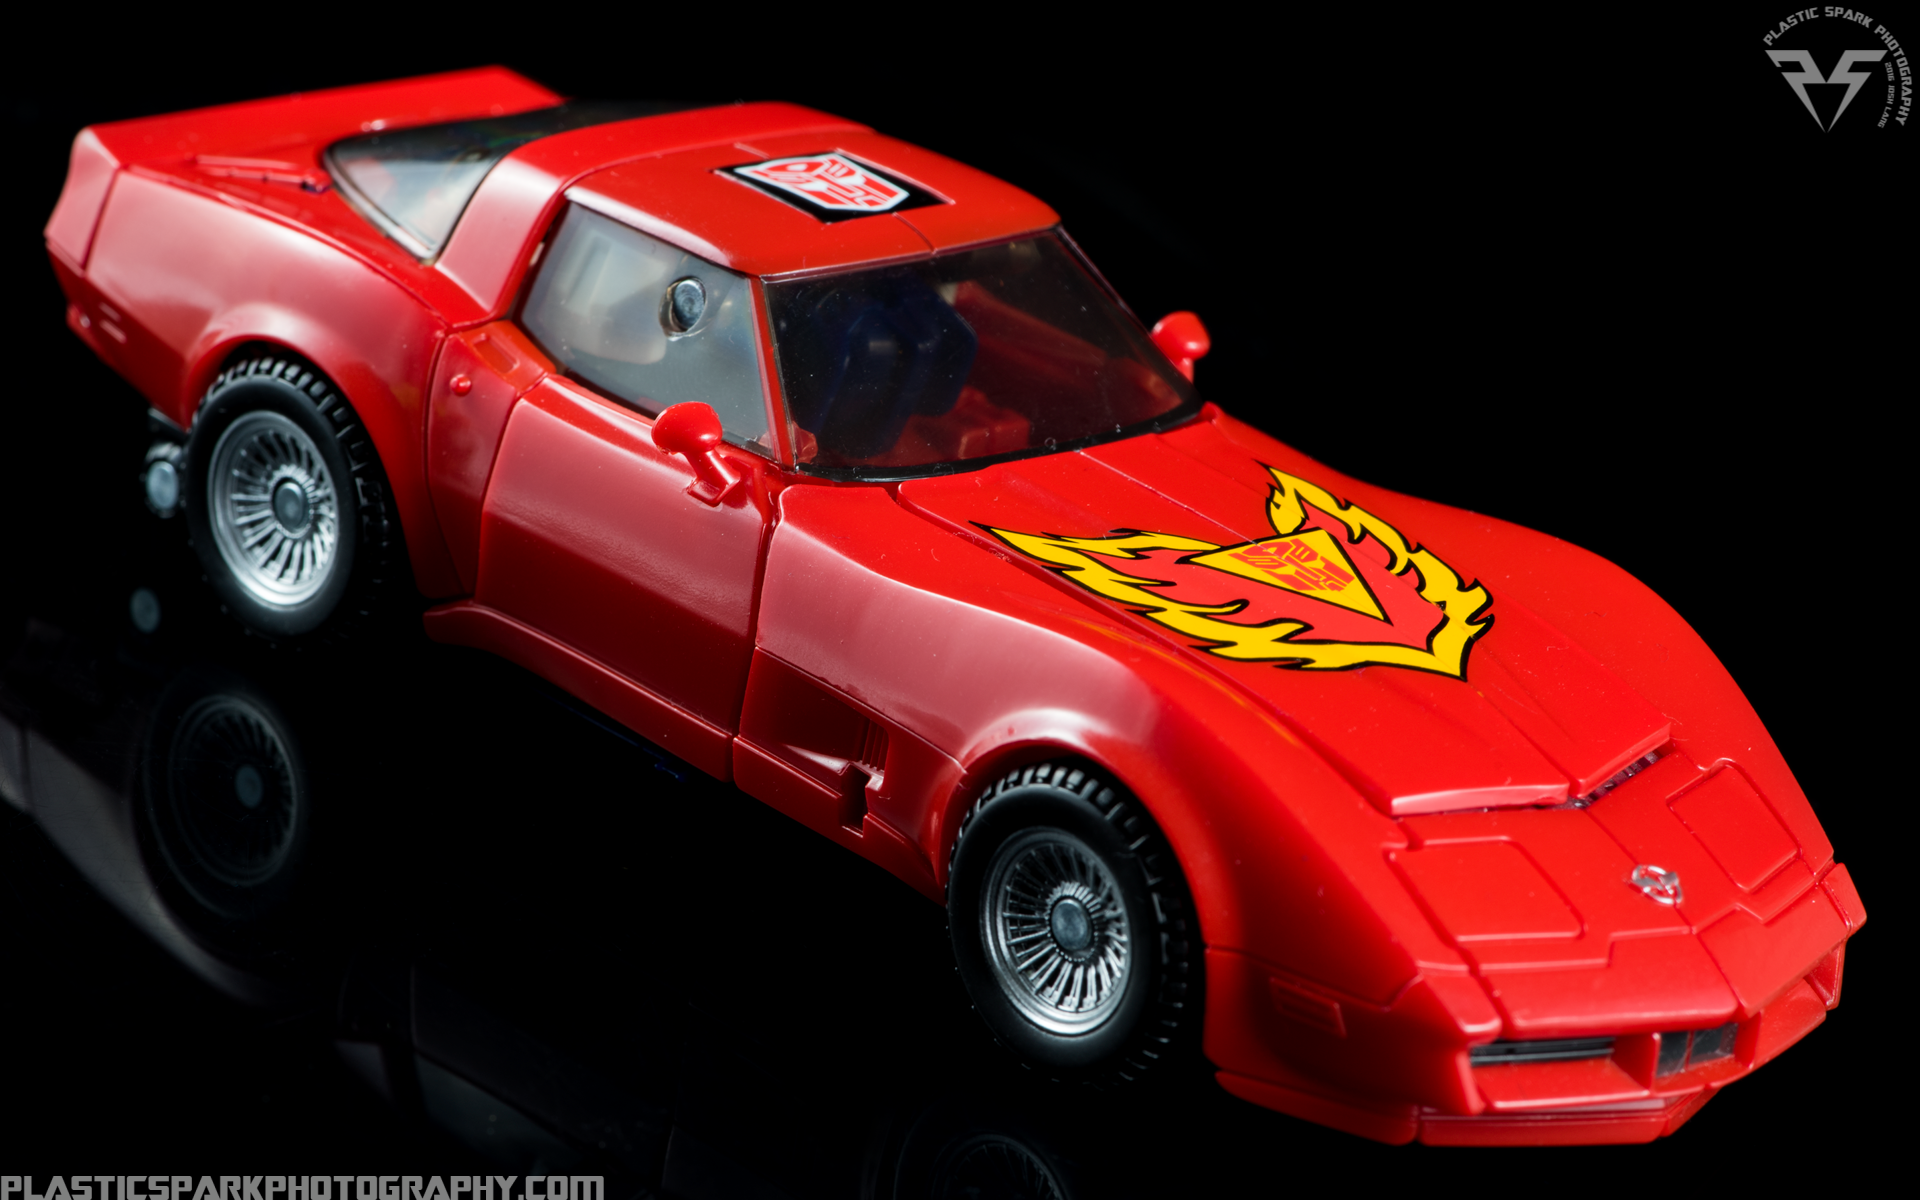 Review - MP26 Masterpiece Road Rage — Plastic Spark Photography